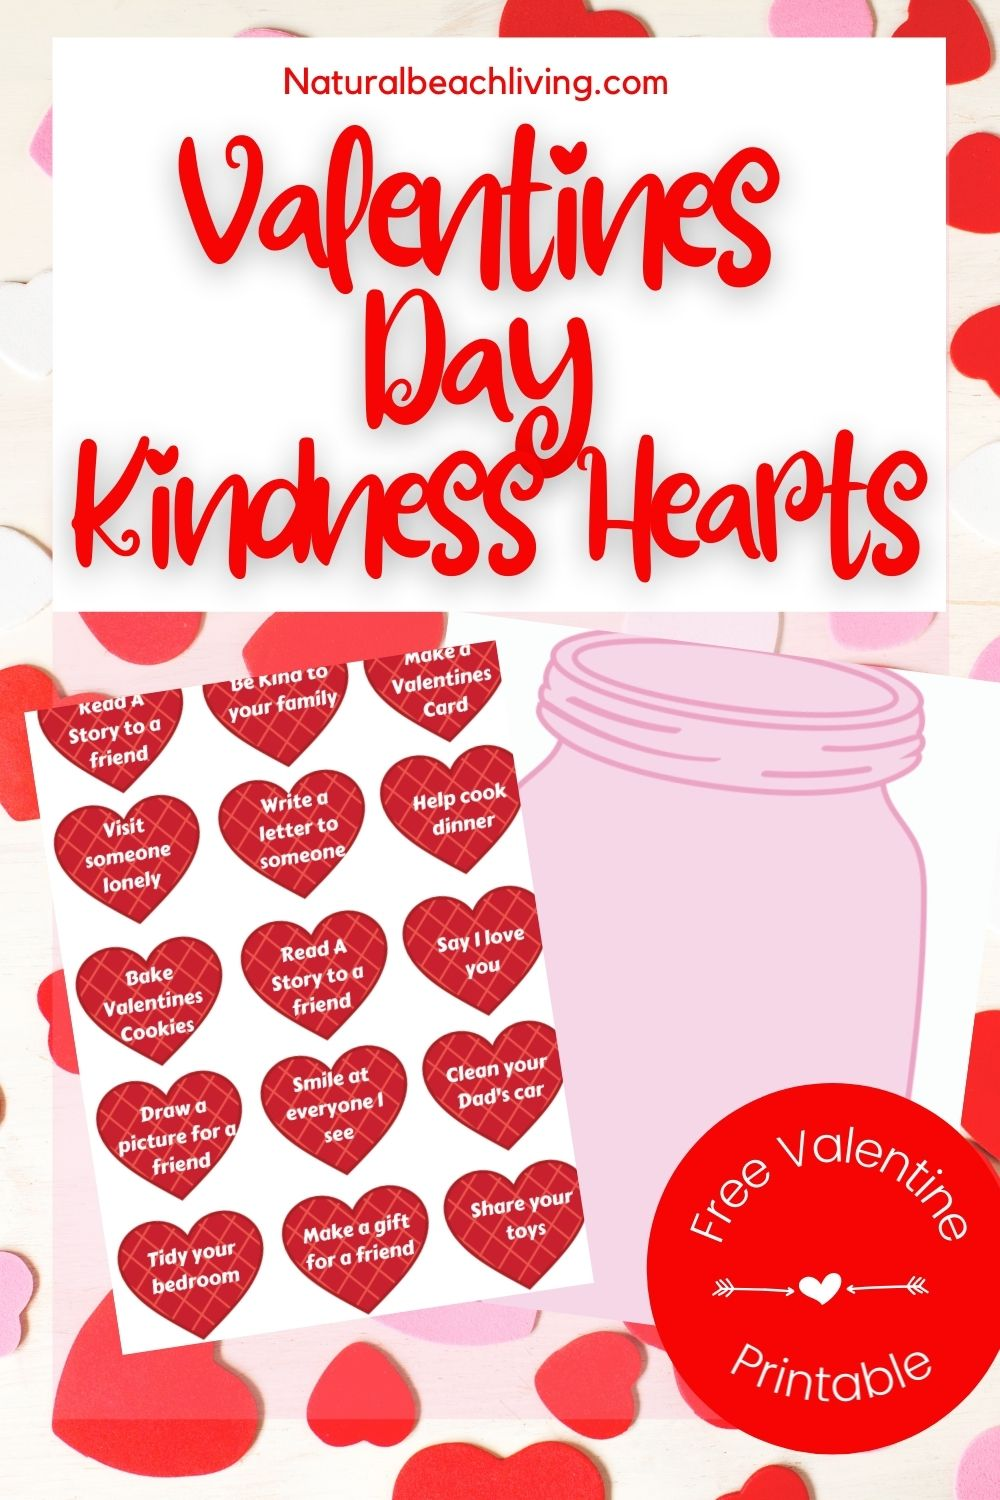 Kindness Hearts Activities and Kindness Printables